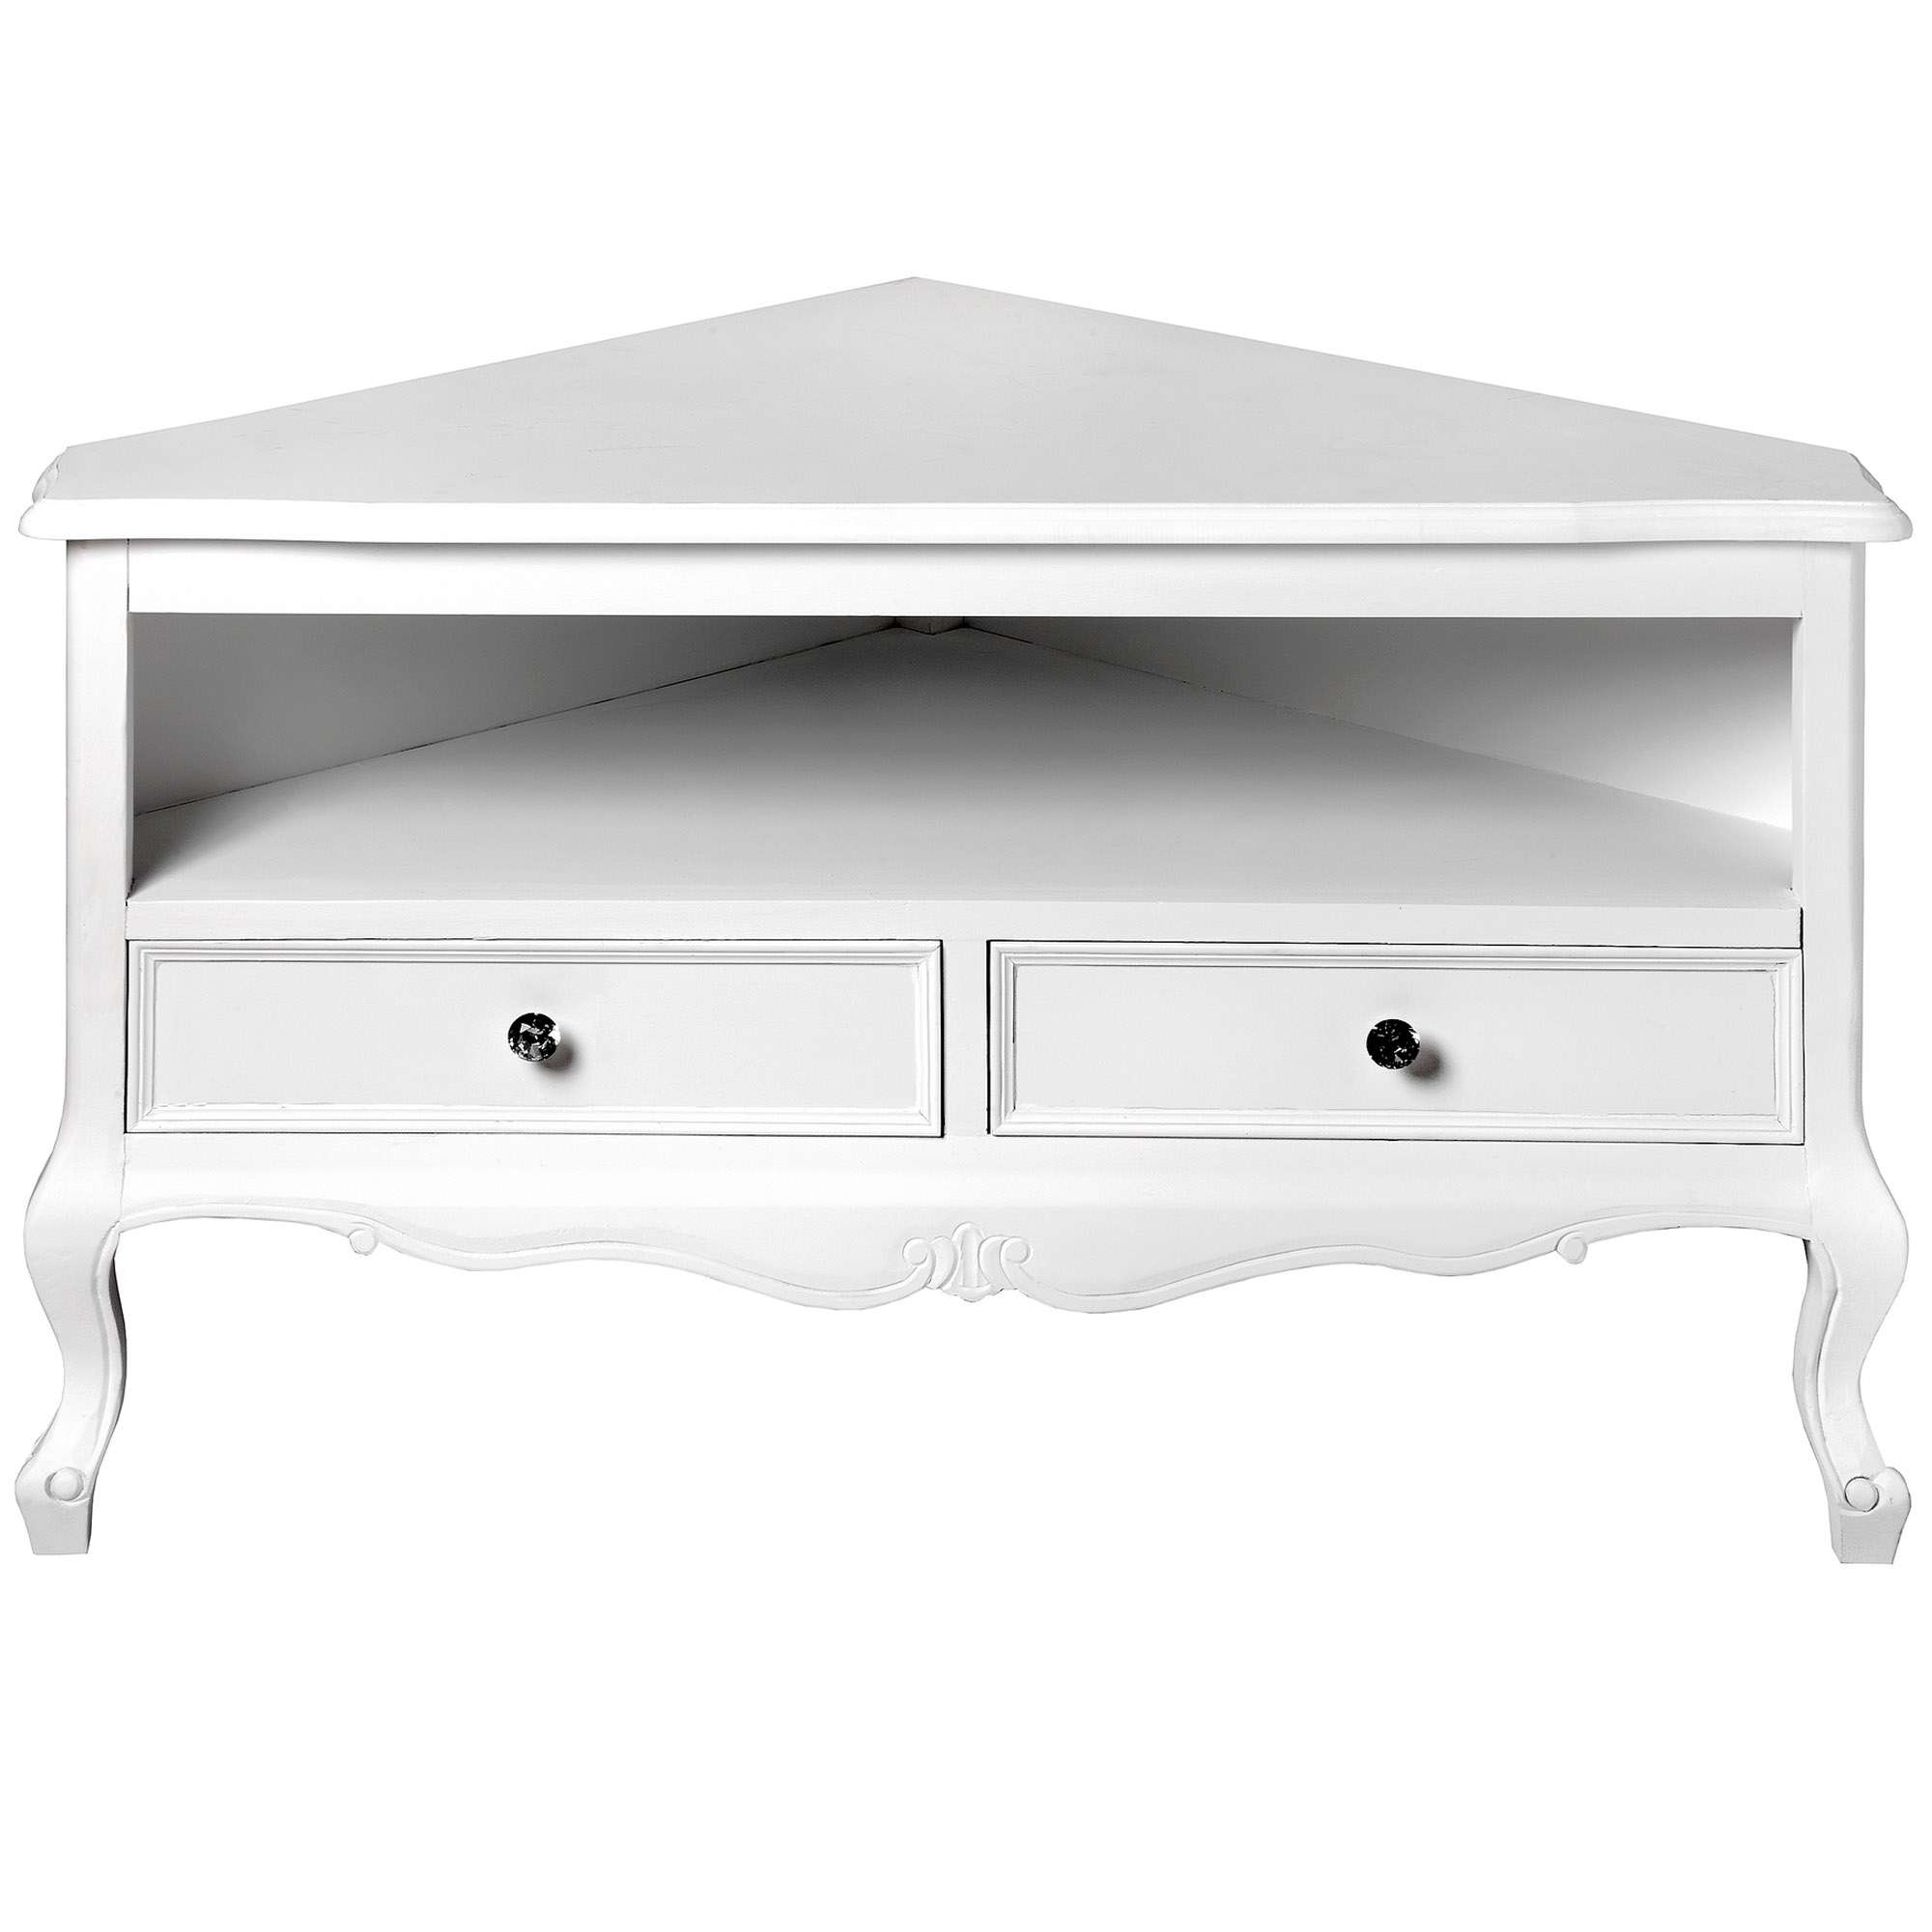 Fleur White Shabby Chic Corner Tv Unit | Lounge | Homesdirect365 With Regard To White Corner Tv Cabinets (View 4 of 20)